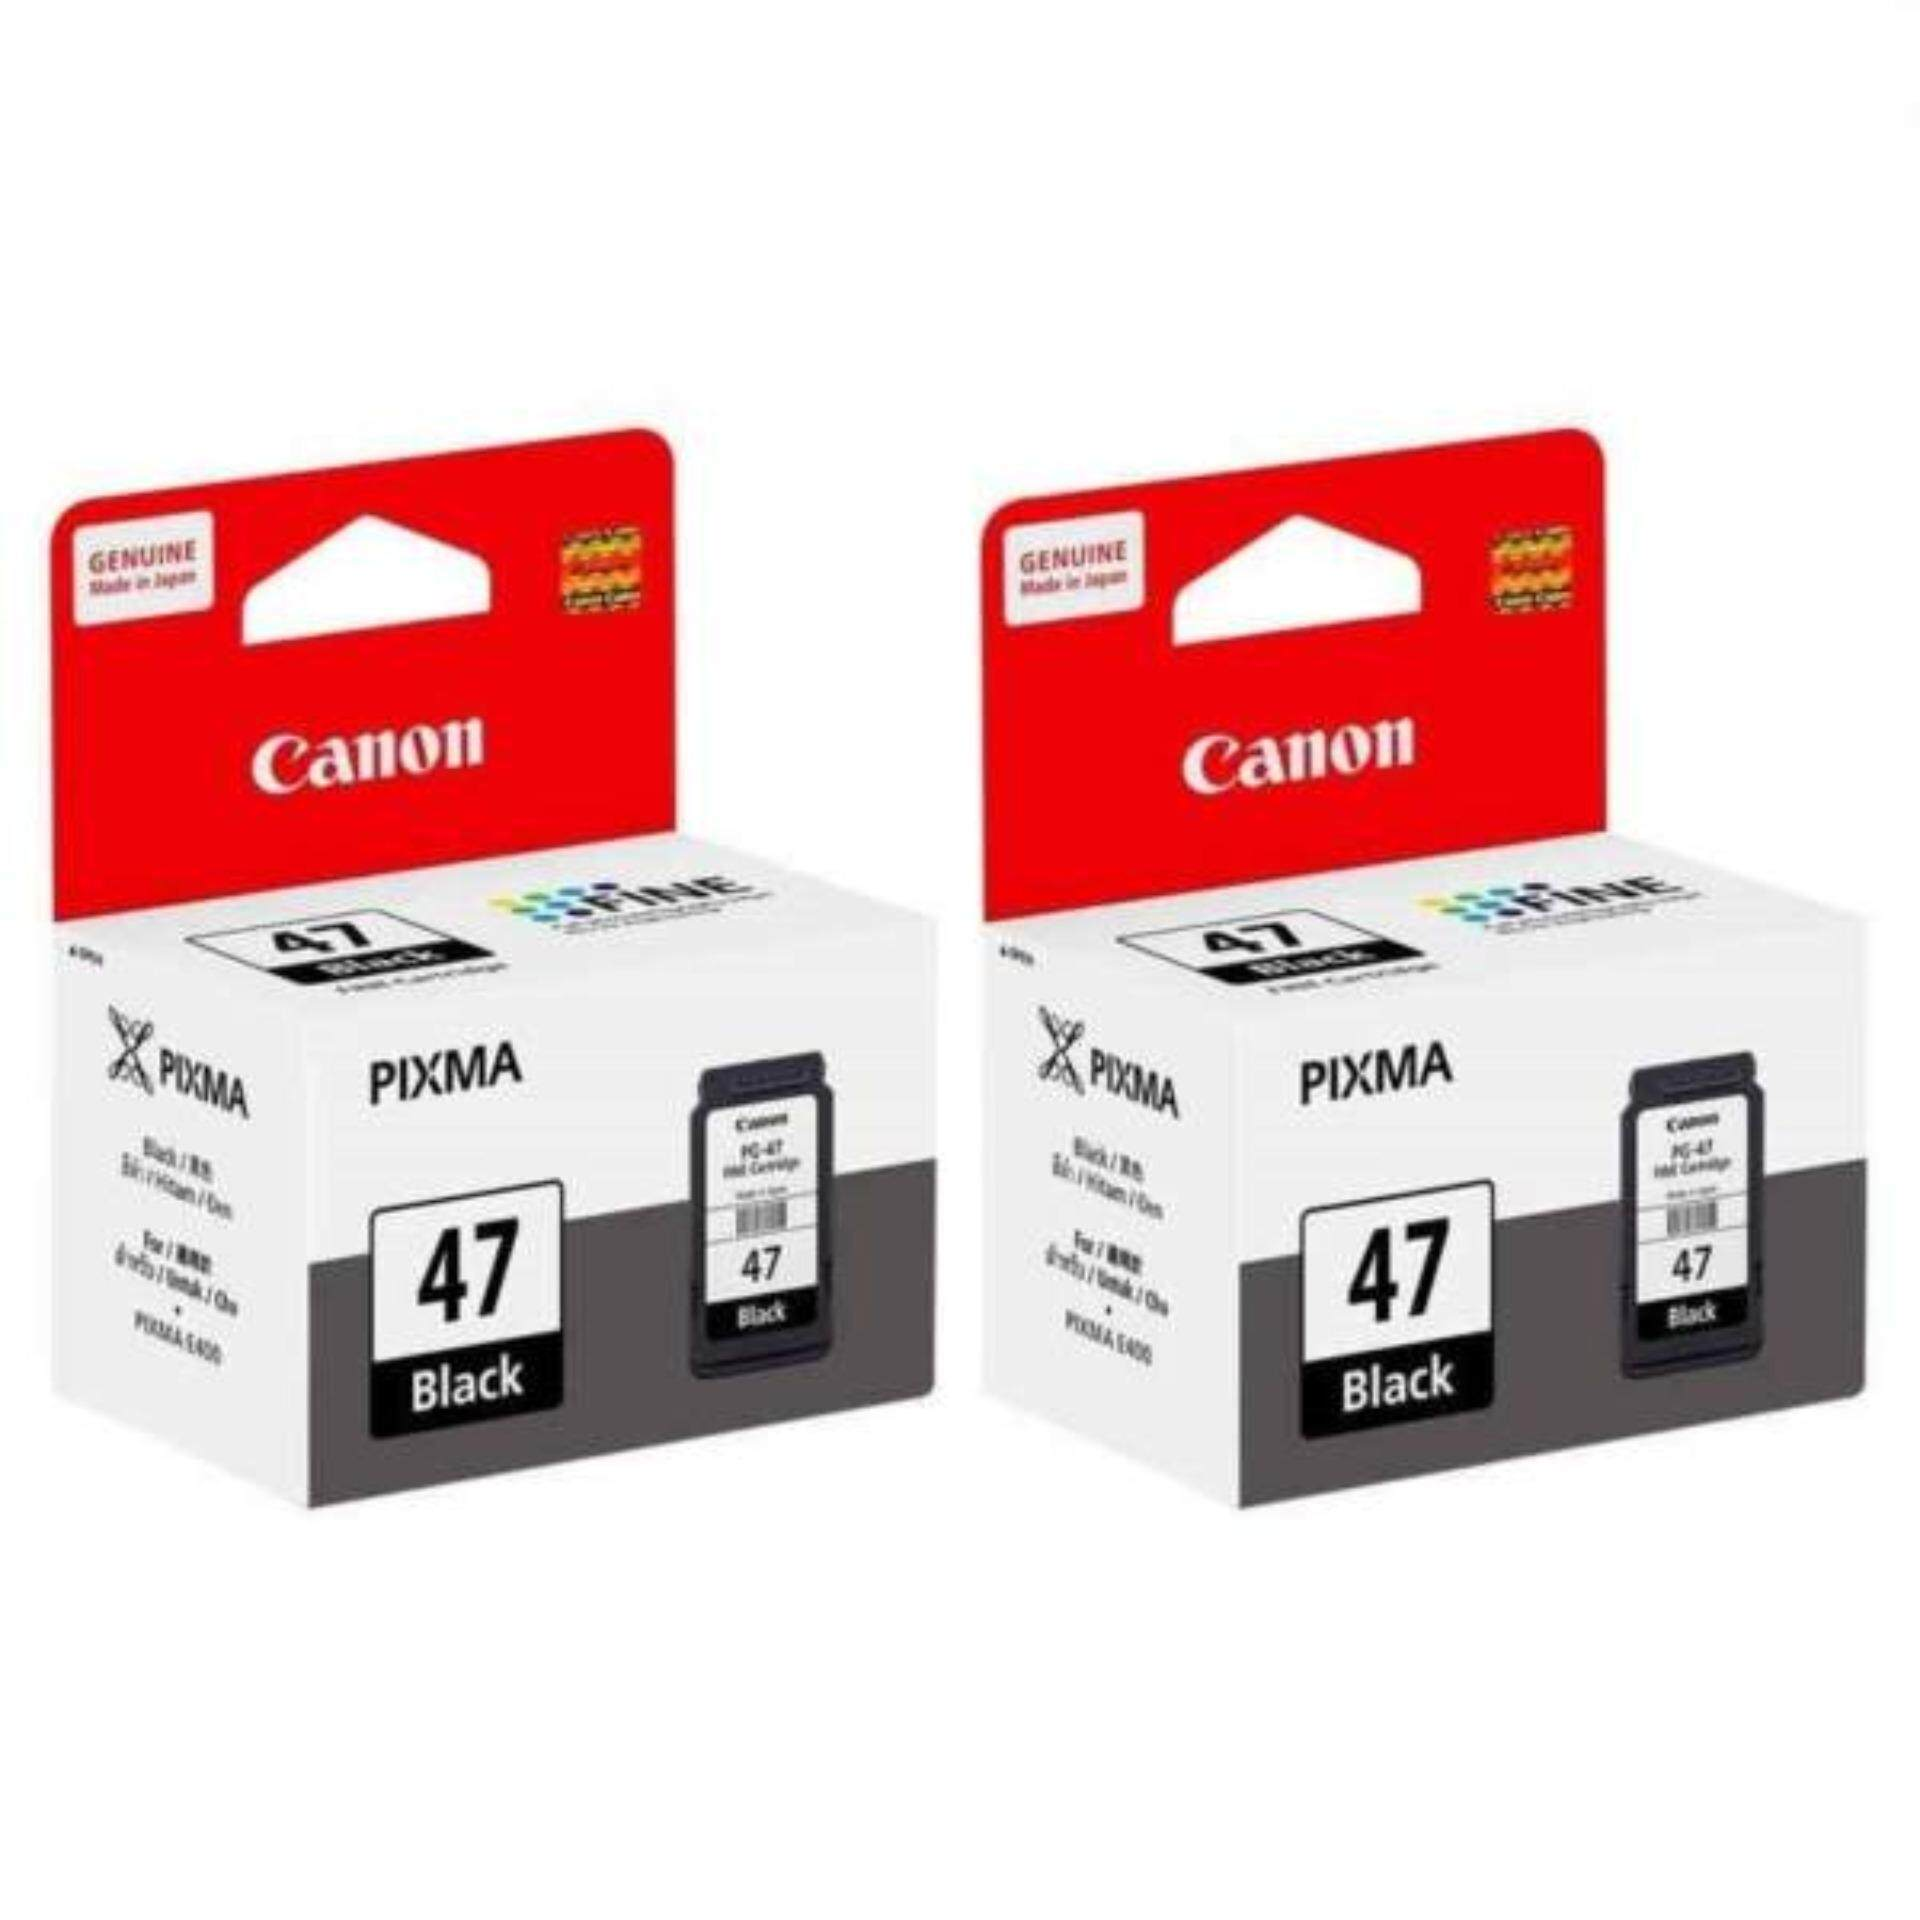 Printers Accessories Buy At Best Price In Tinta Hp 680 Colour Ink Cartridge Original Canon Genuine Black X 2 Pg47 Pg 47 Pixma E400